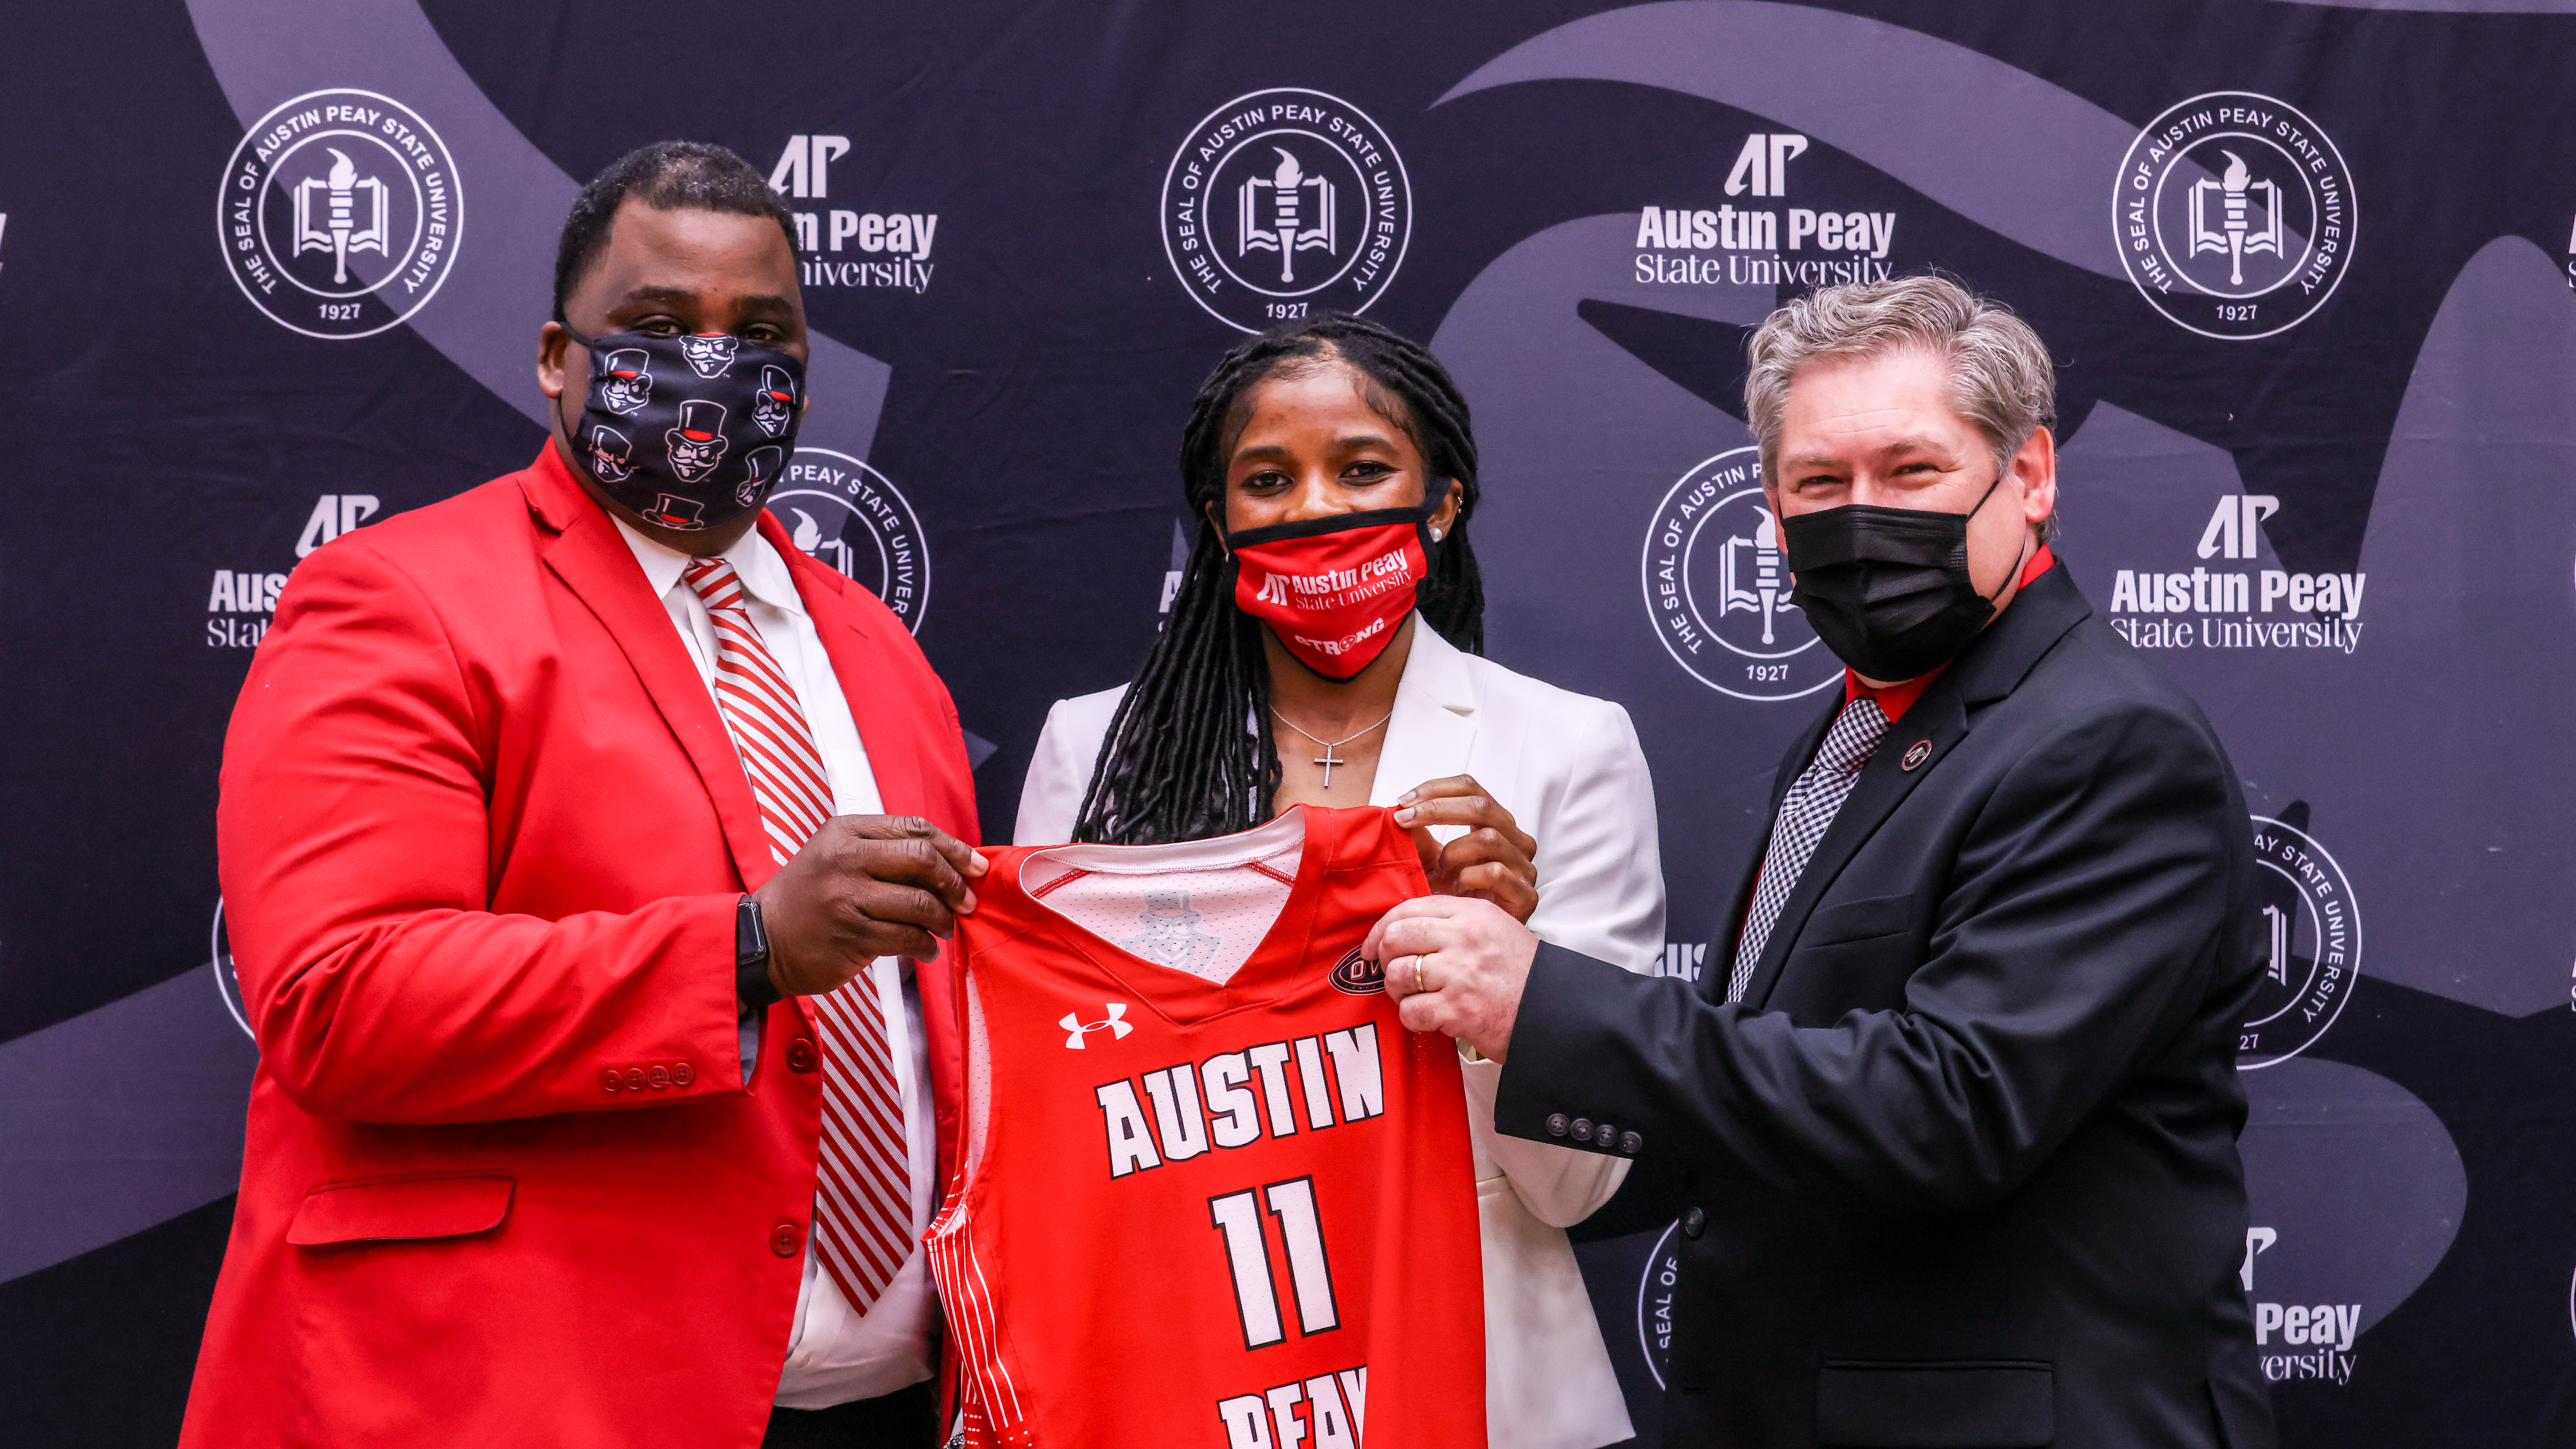 Brittany Young is introduced as the newest head women's basketball coach at APSU. ERIC ELLIOT | APSU ATHLETICS